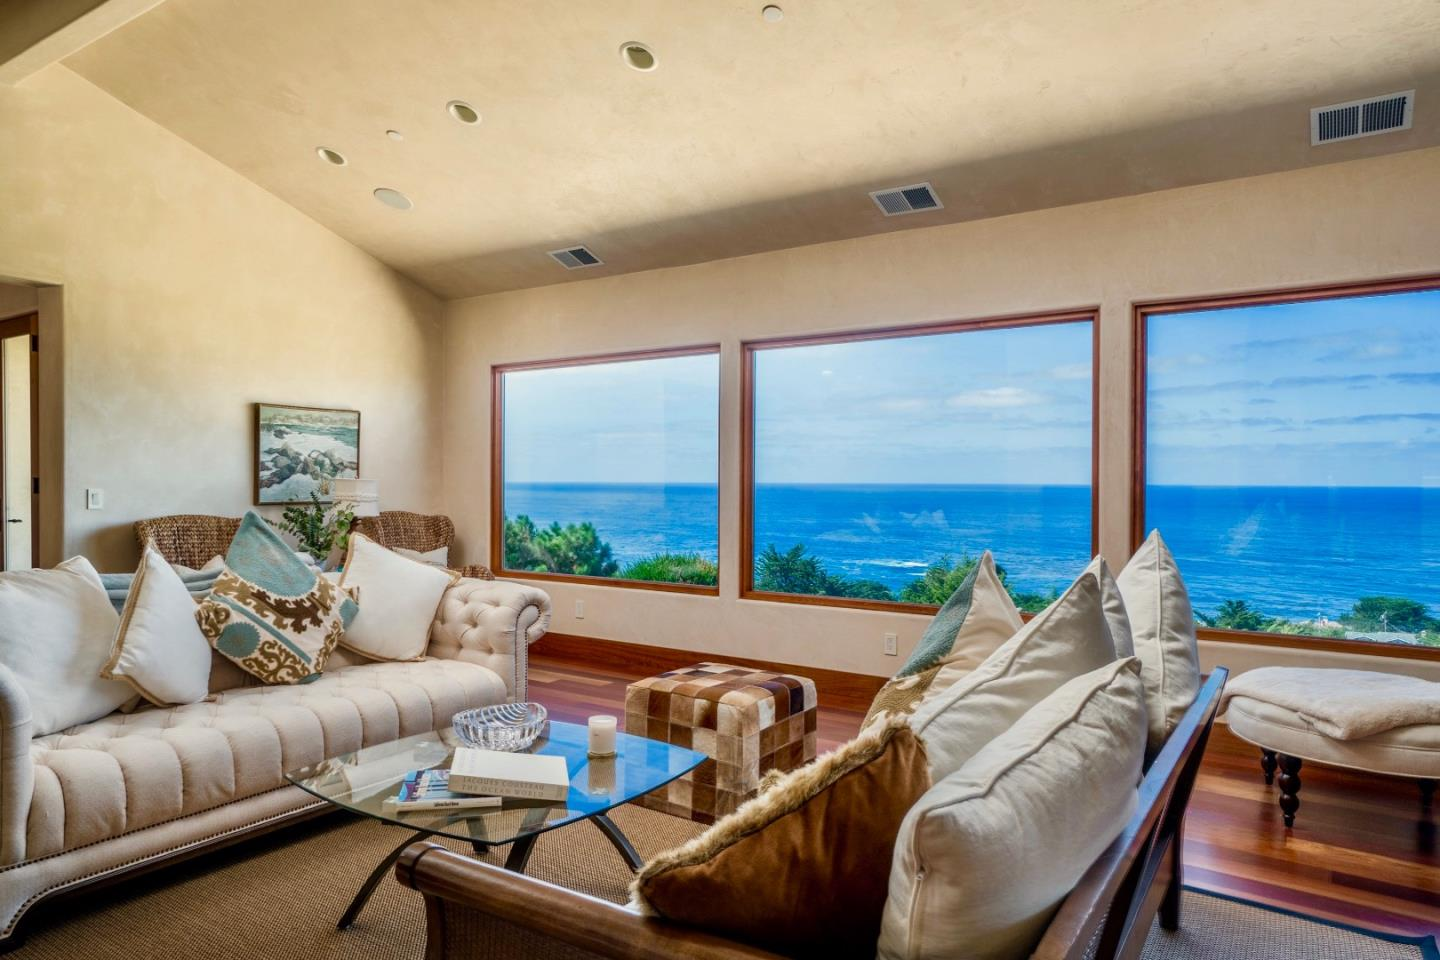 Additional photo for property listing at 32691 Coast Ridge Drive  Carmel, California 93923 United States